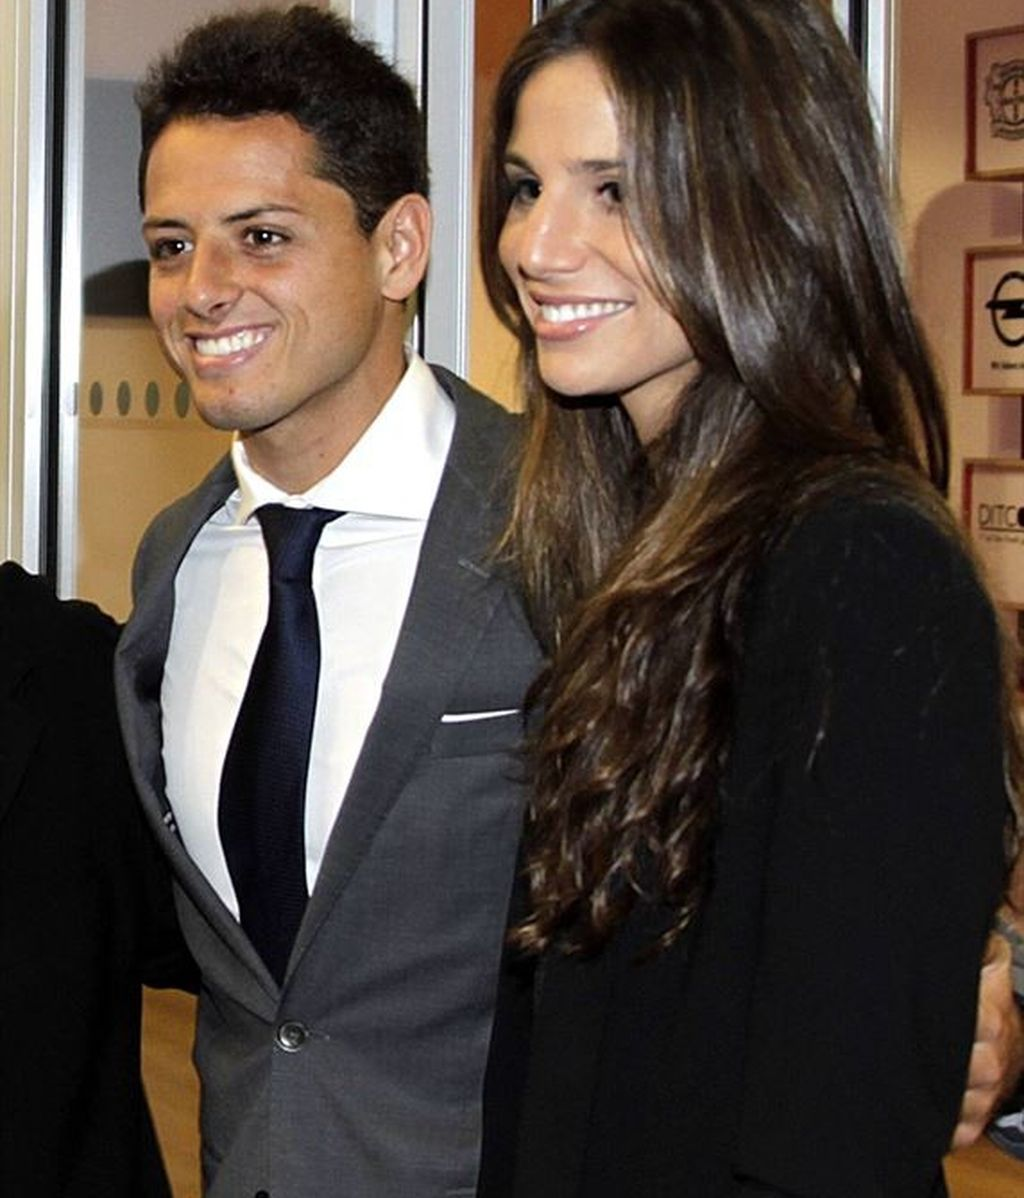 Lucia Villalon, Chicharito